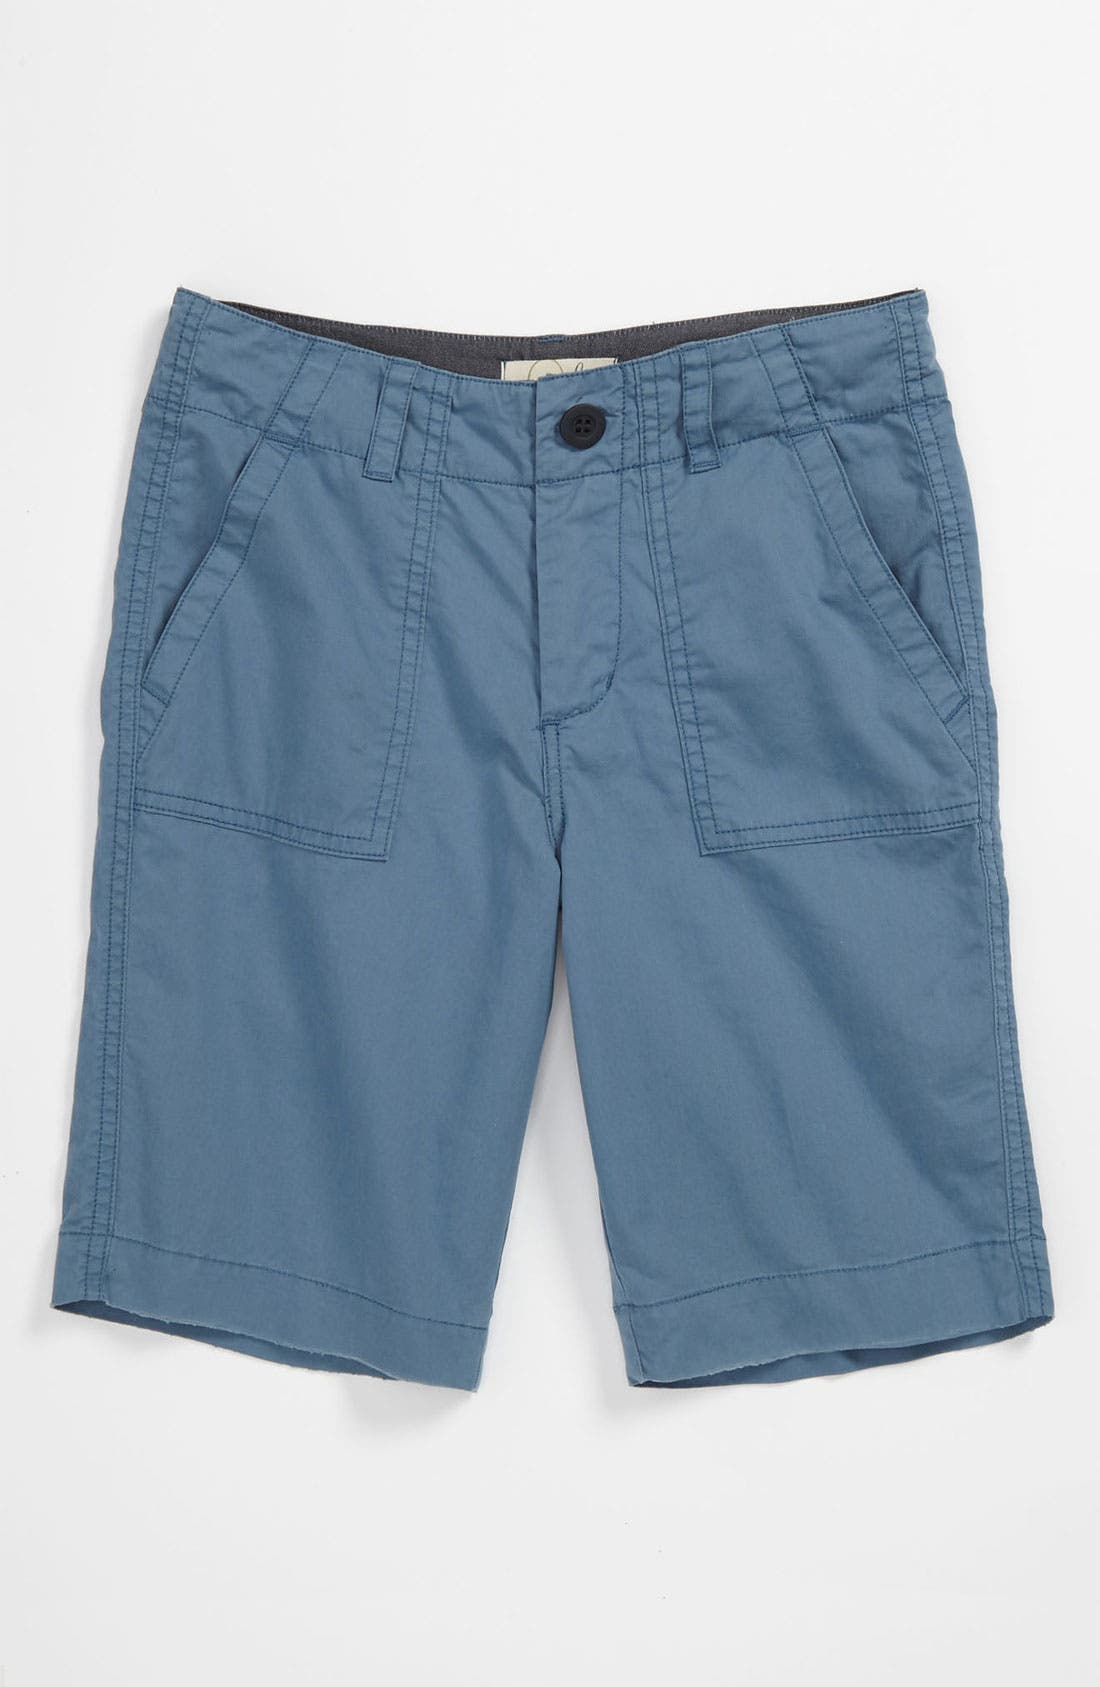 Main Image - Peek 'Jericho' Utility Shorts (Toddler Boys, Little Boys & Big Boys)